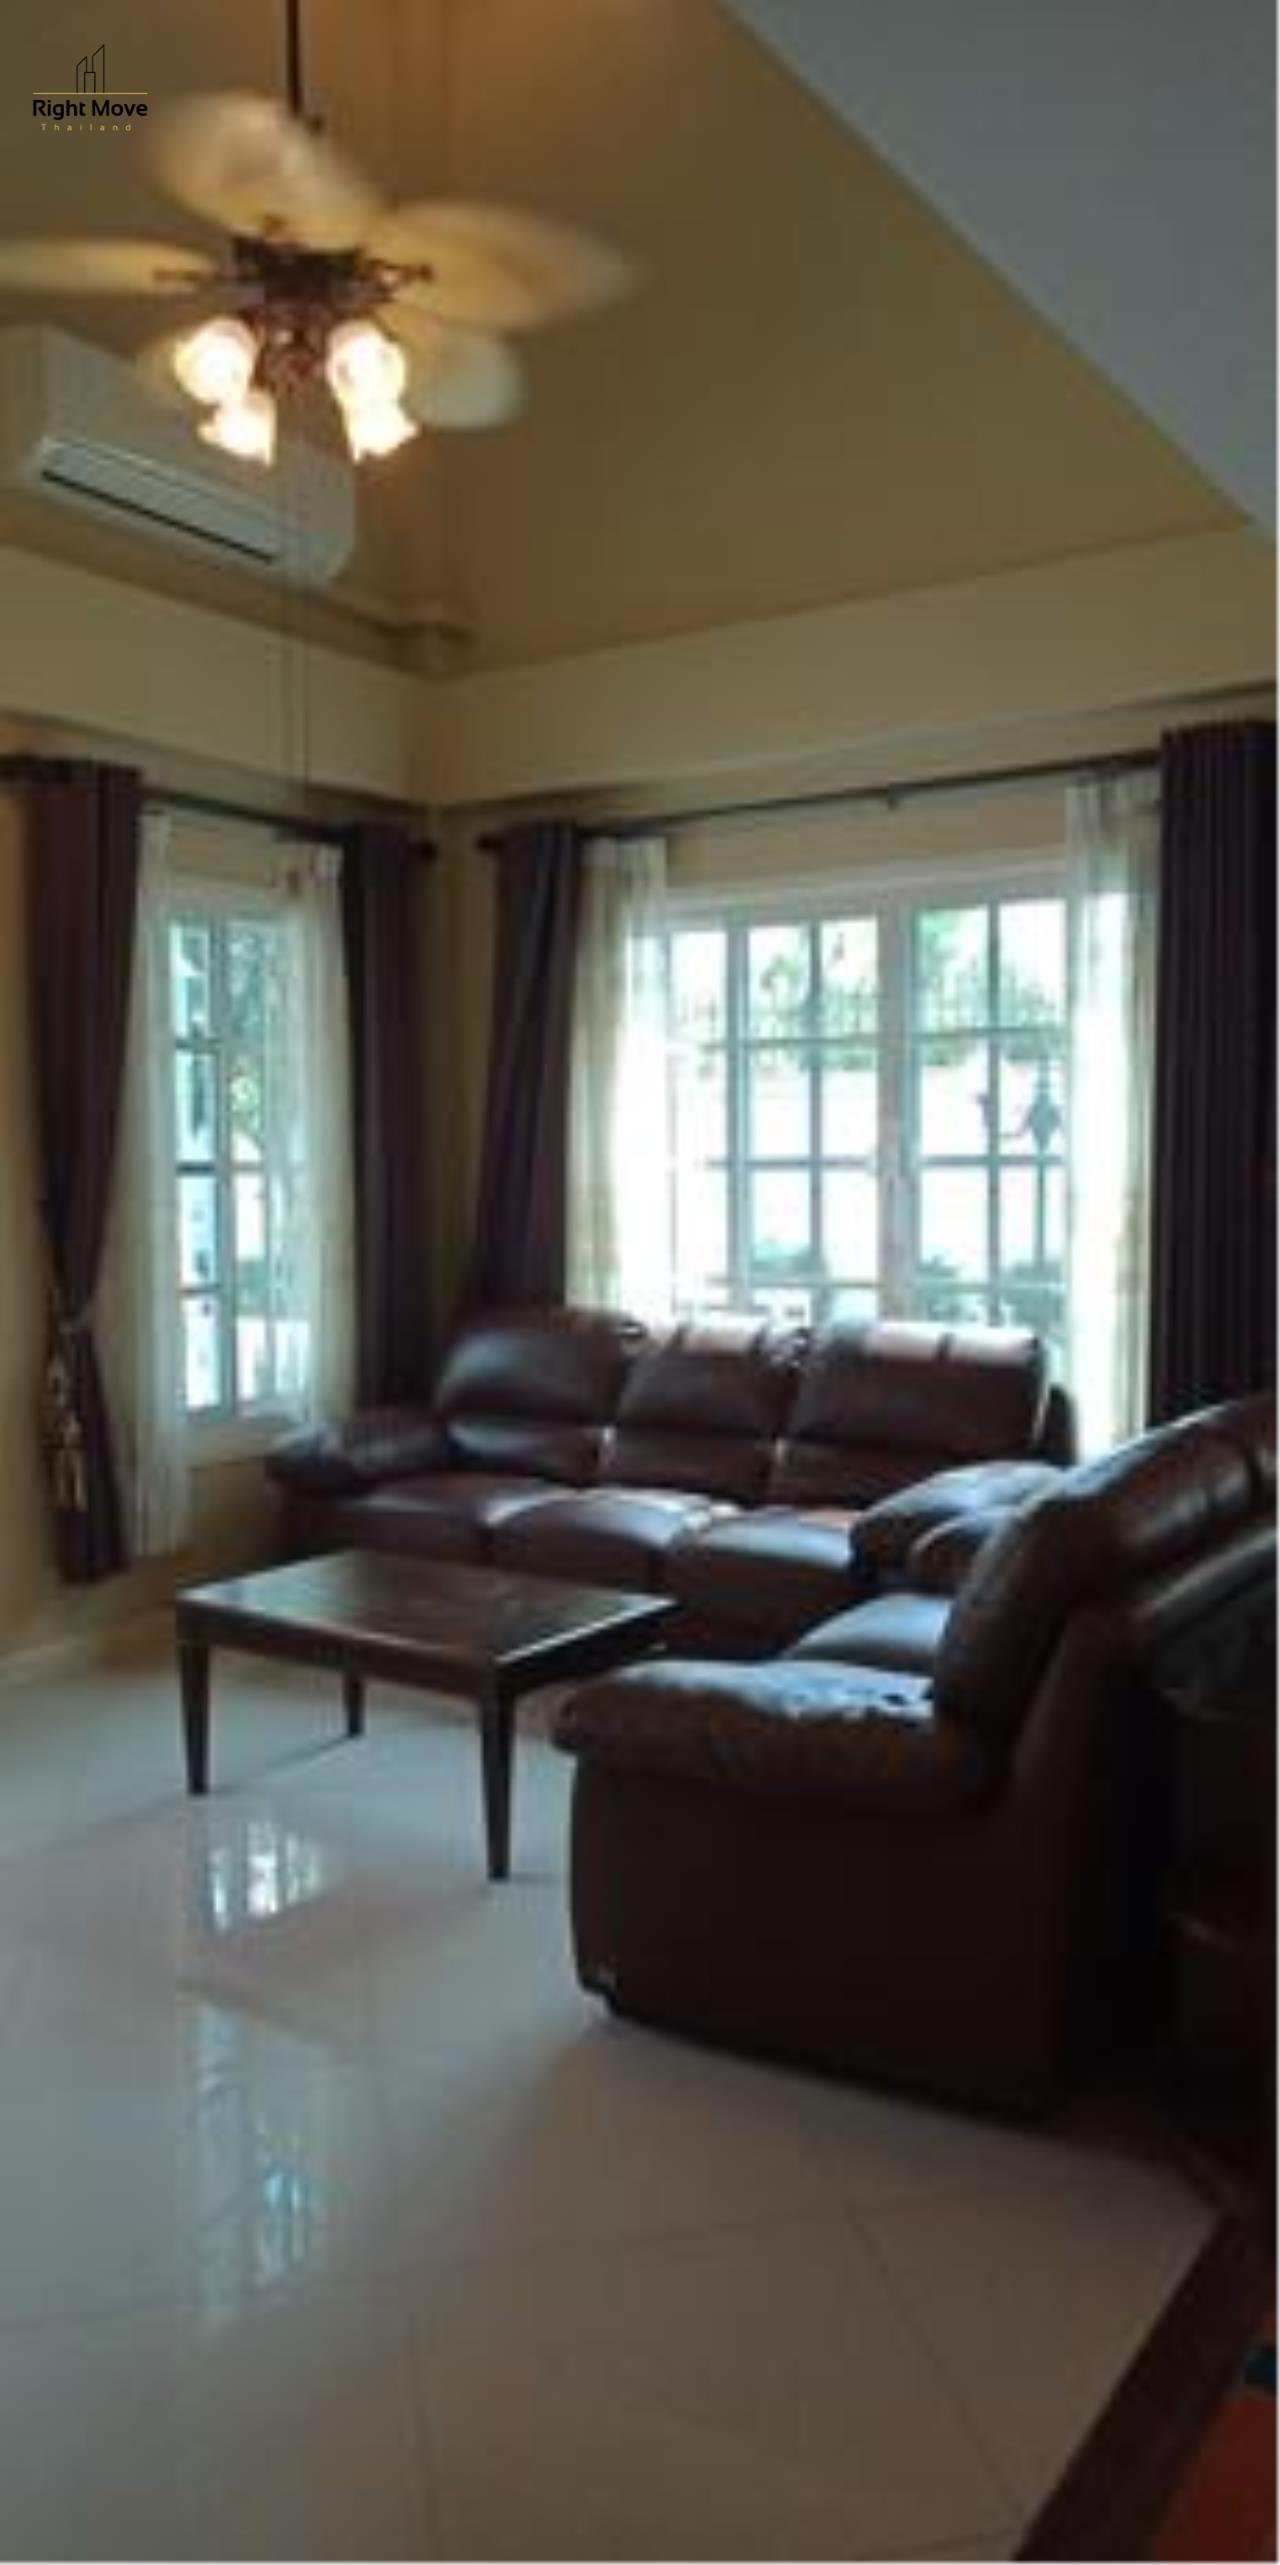 Right Move Thailand Agency's HR278 House For Rent 100,000 THB 3+1 Bedrooms 4 280 Sqm  24